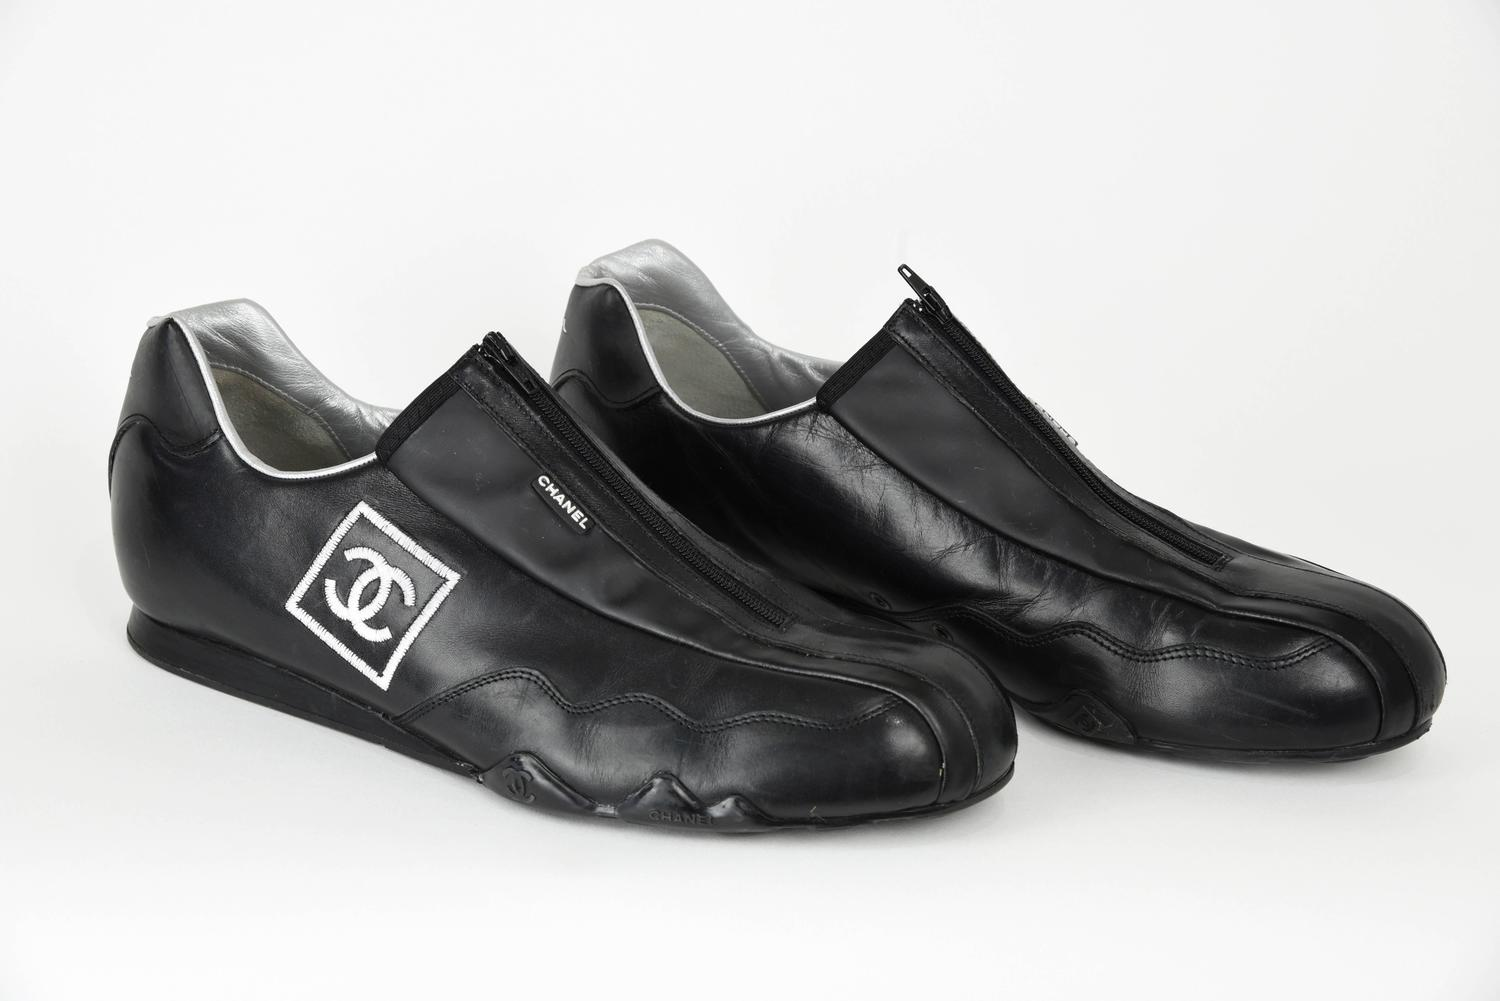 2000s chanel sleek black leather athletic shoes with